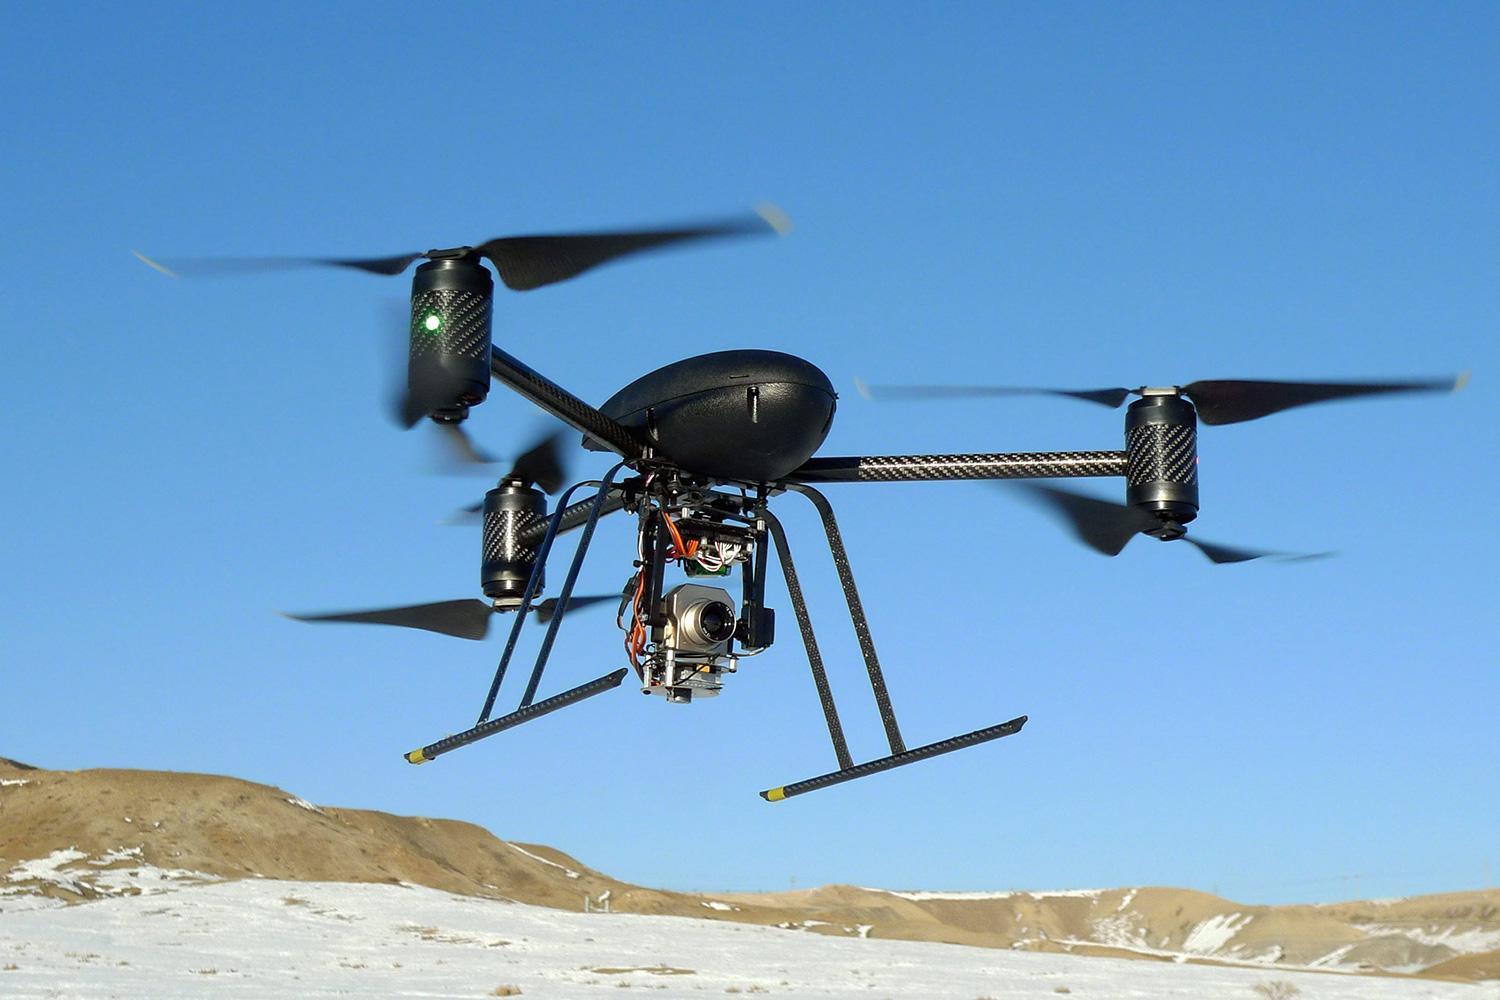 The many uses for the drone technology in the united states